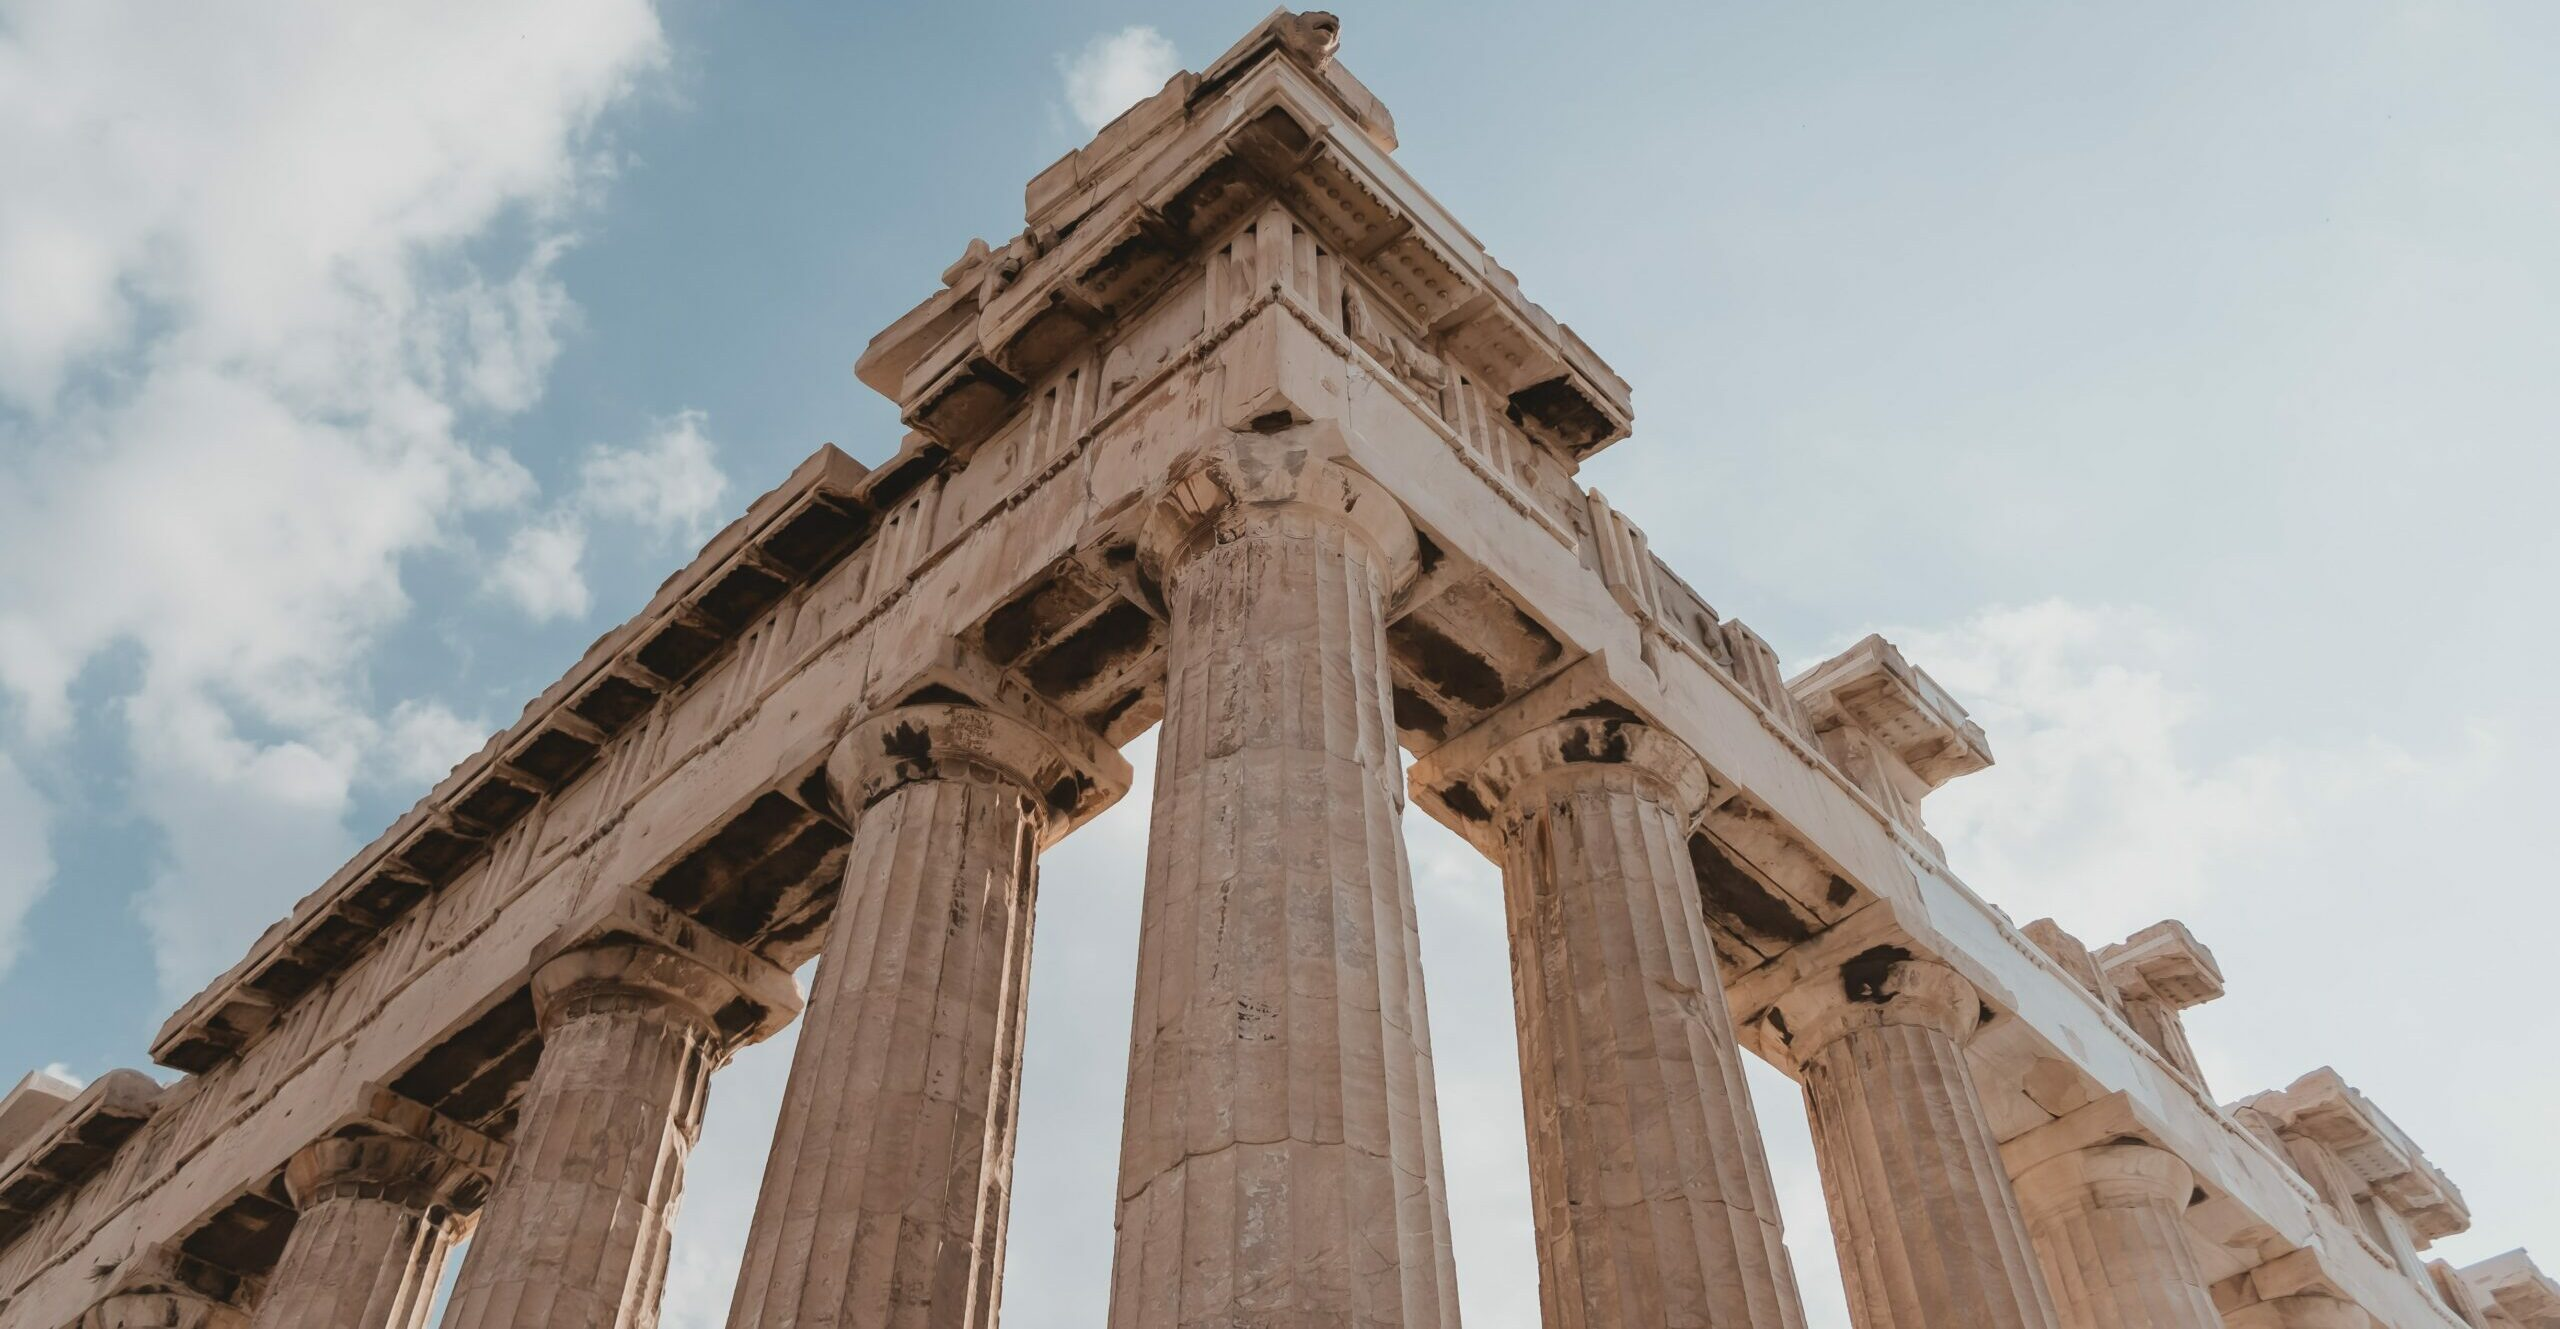 Athens: where the ancients shed tears and why